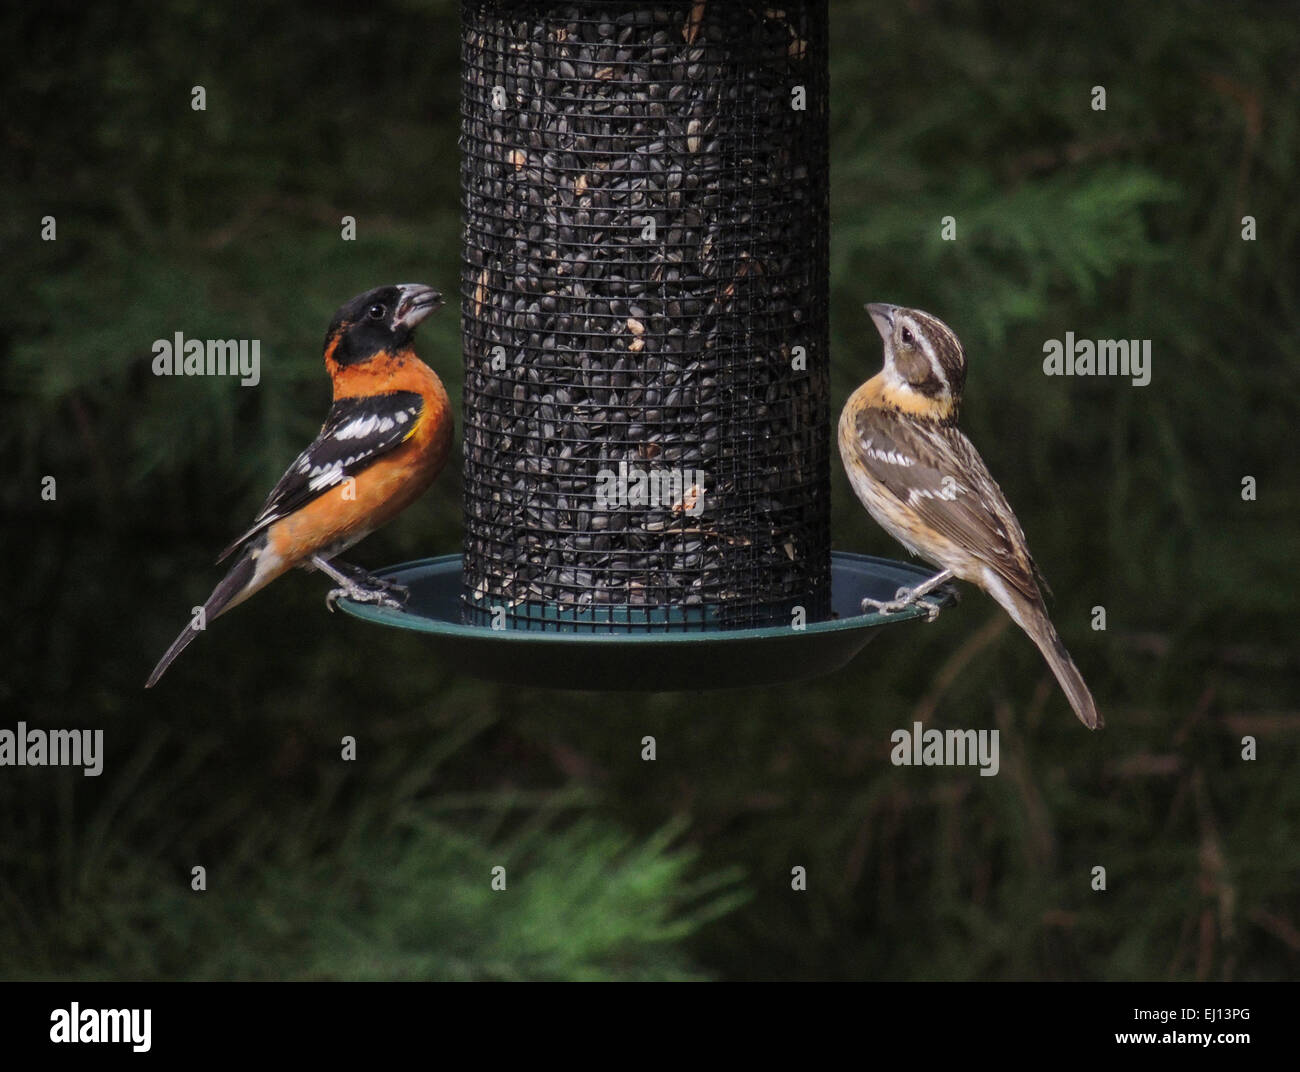 Black-headed Grosbeak (Pheucticus melanocephalus) male and female visit a bird feeder filled with sunflower during - Stock Image